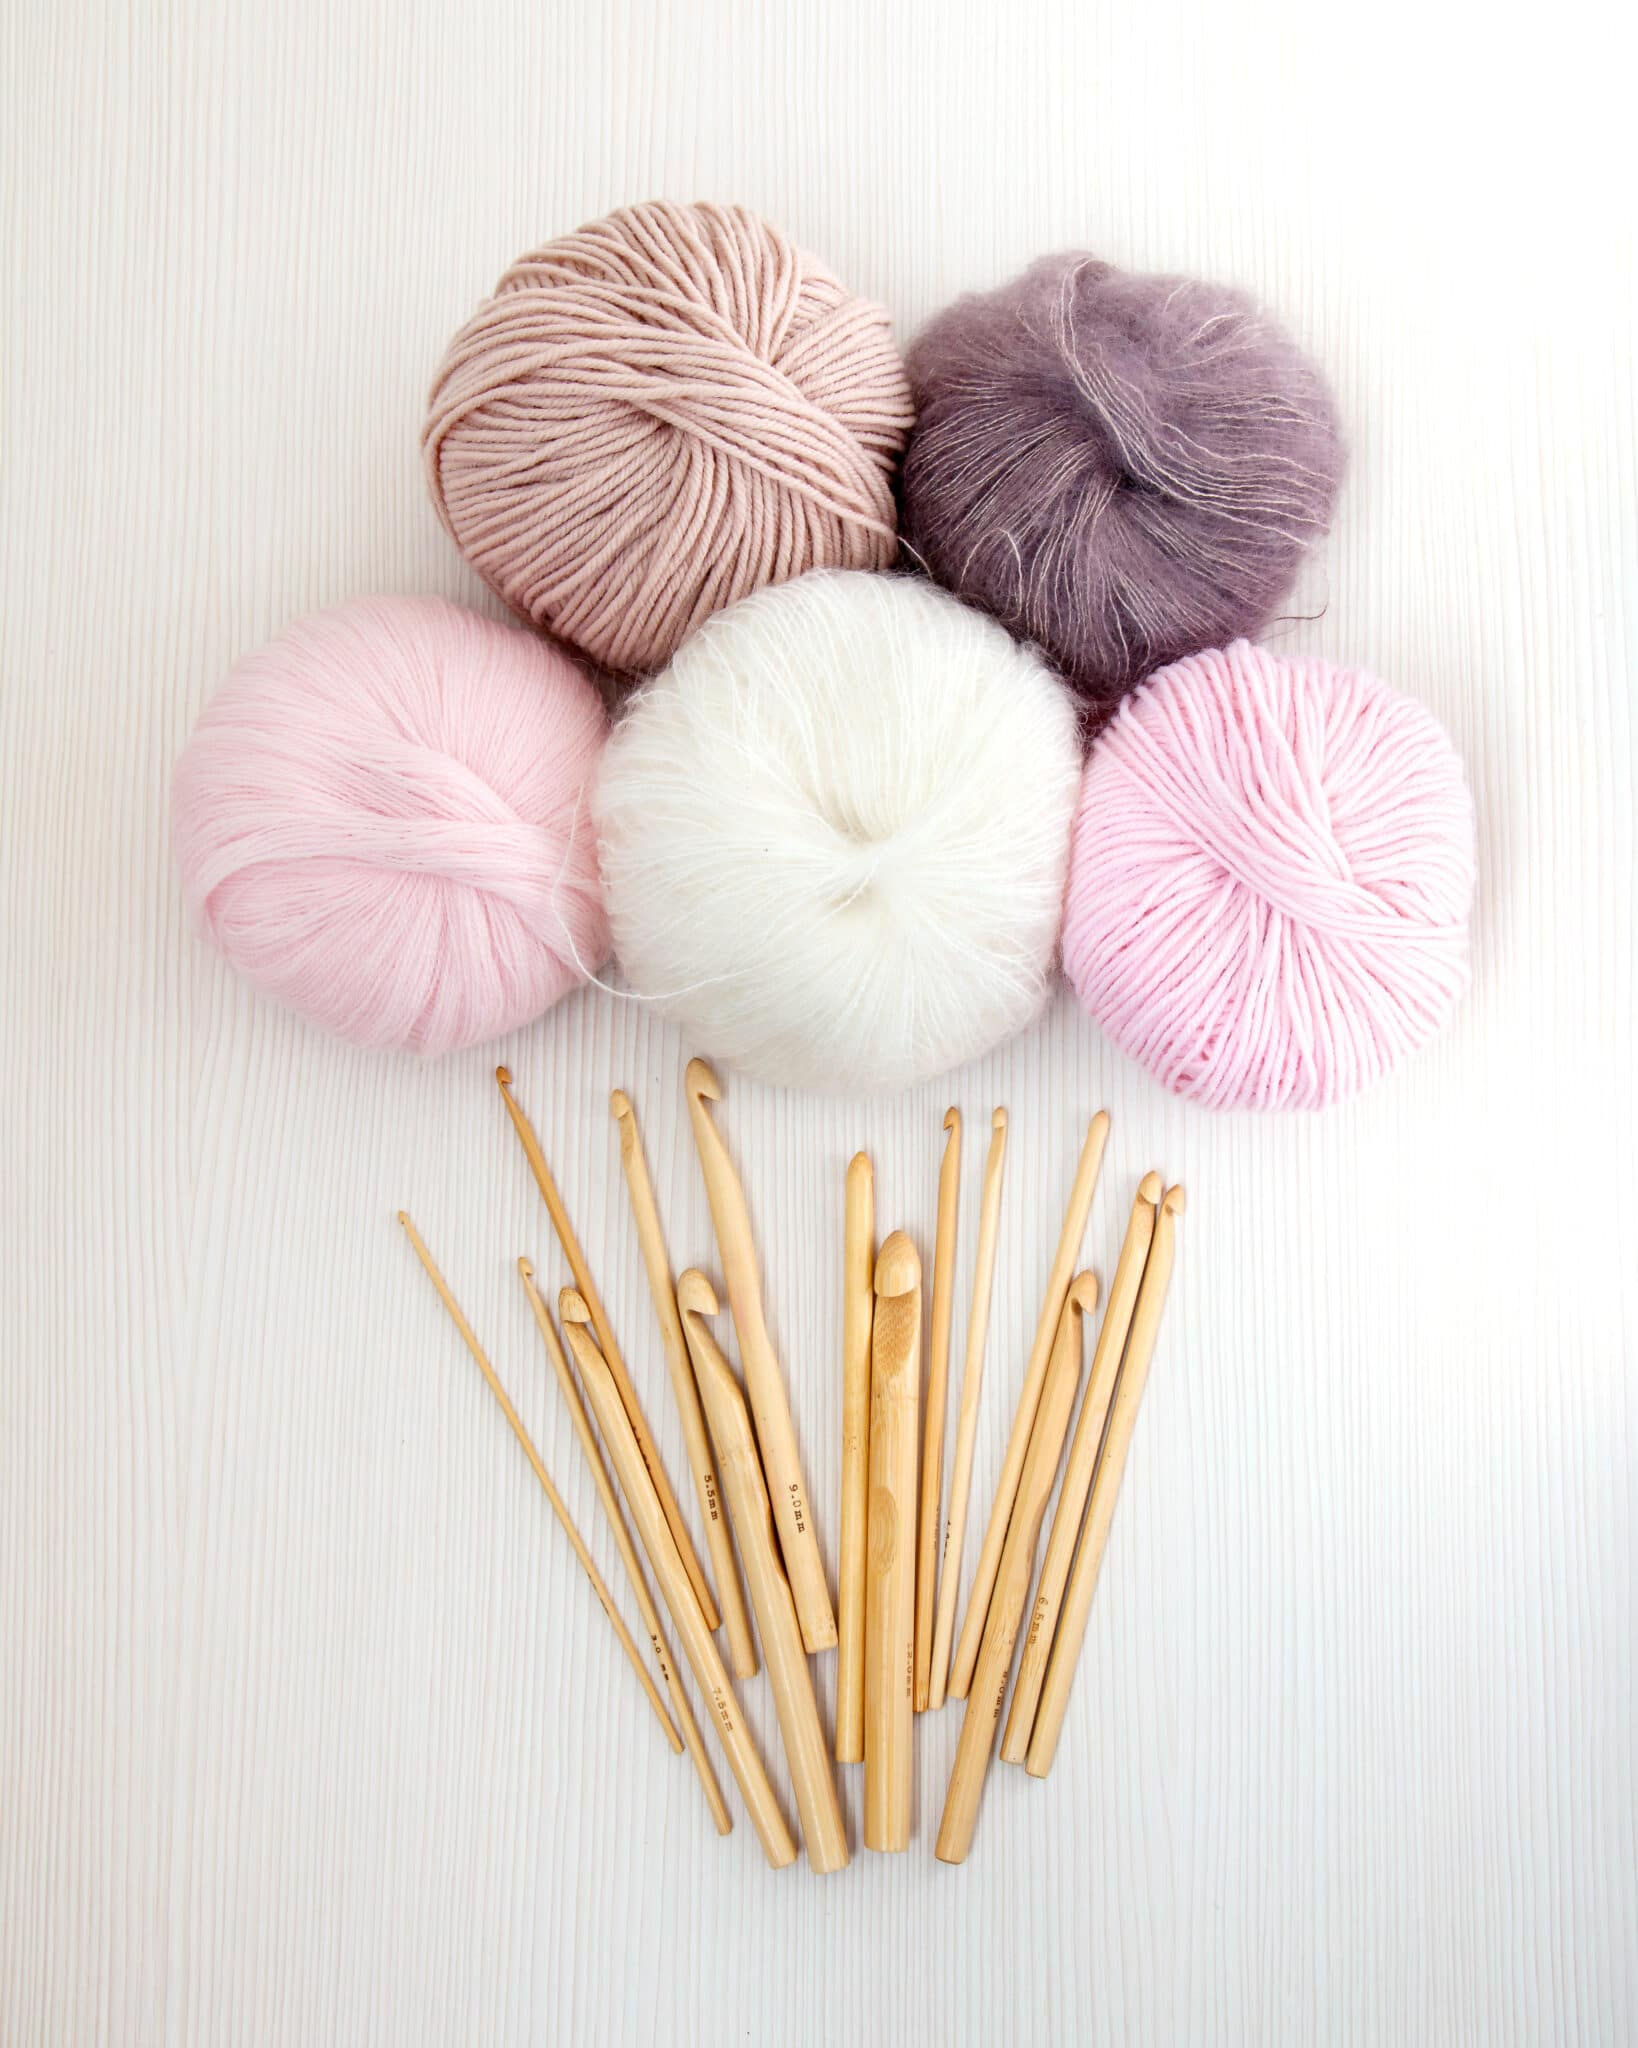 Wooden crochet hooks on white wood background with balls of yarn pastel colors. Top view. Hobby and handmade concept.